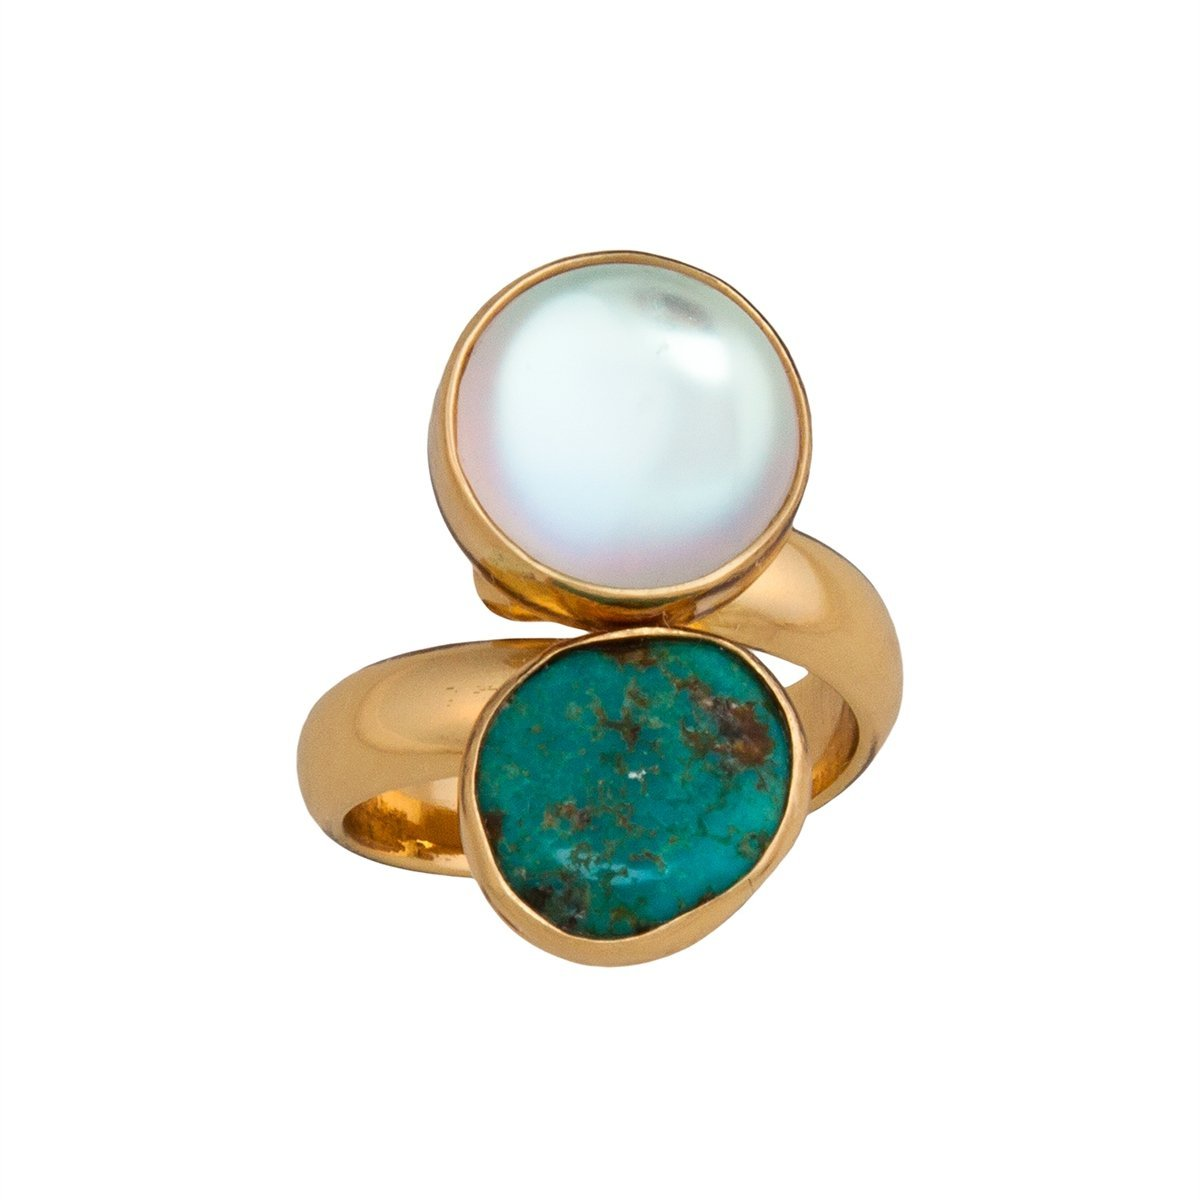 Alchemia Luminite & Campo Frio Adjustable Ring | Charles Albert Jewelry